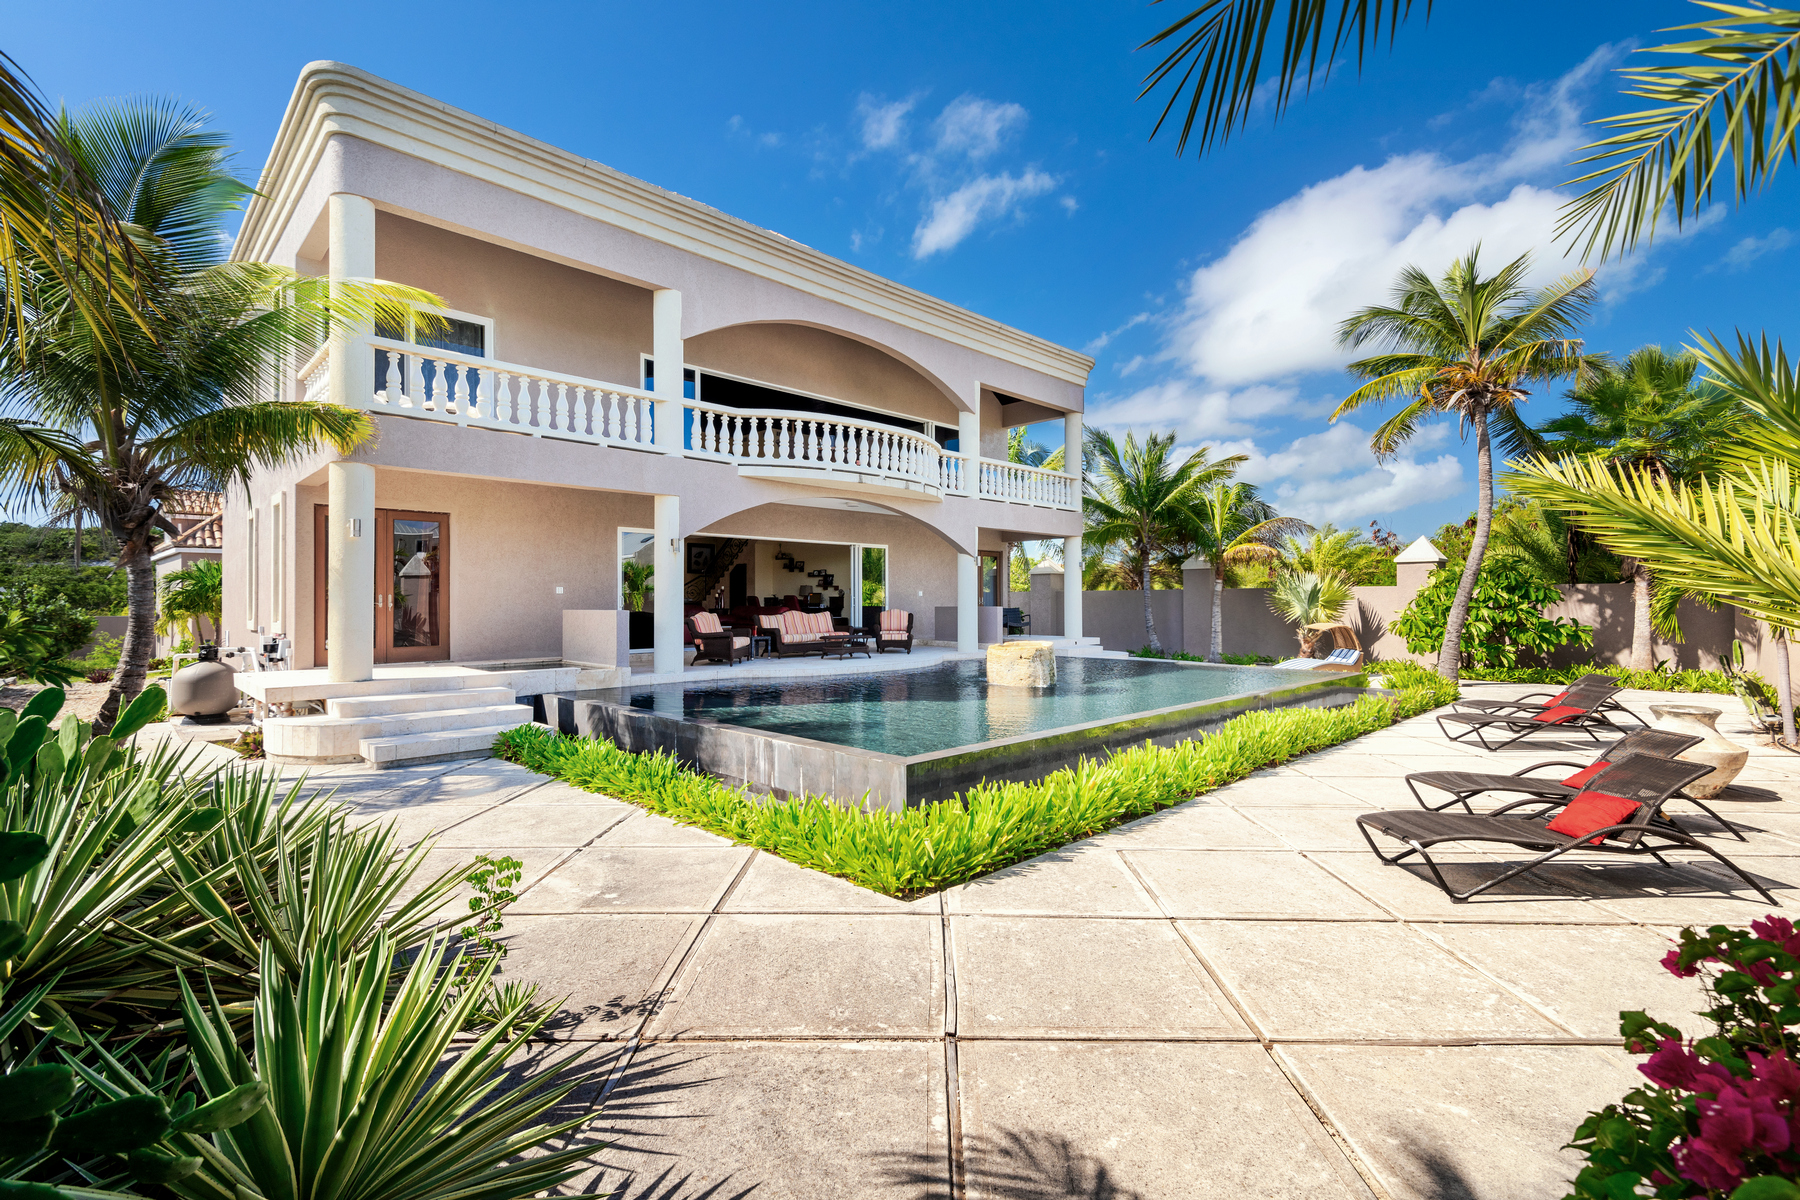 Single Family Home for Sale at Delancy House Richmond Hill, Providenciales Turks And Caicos Islands